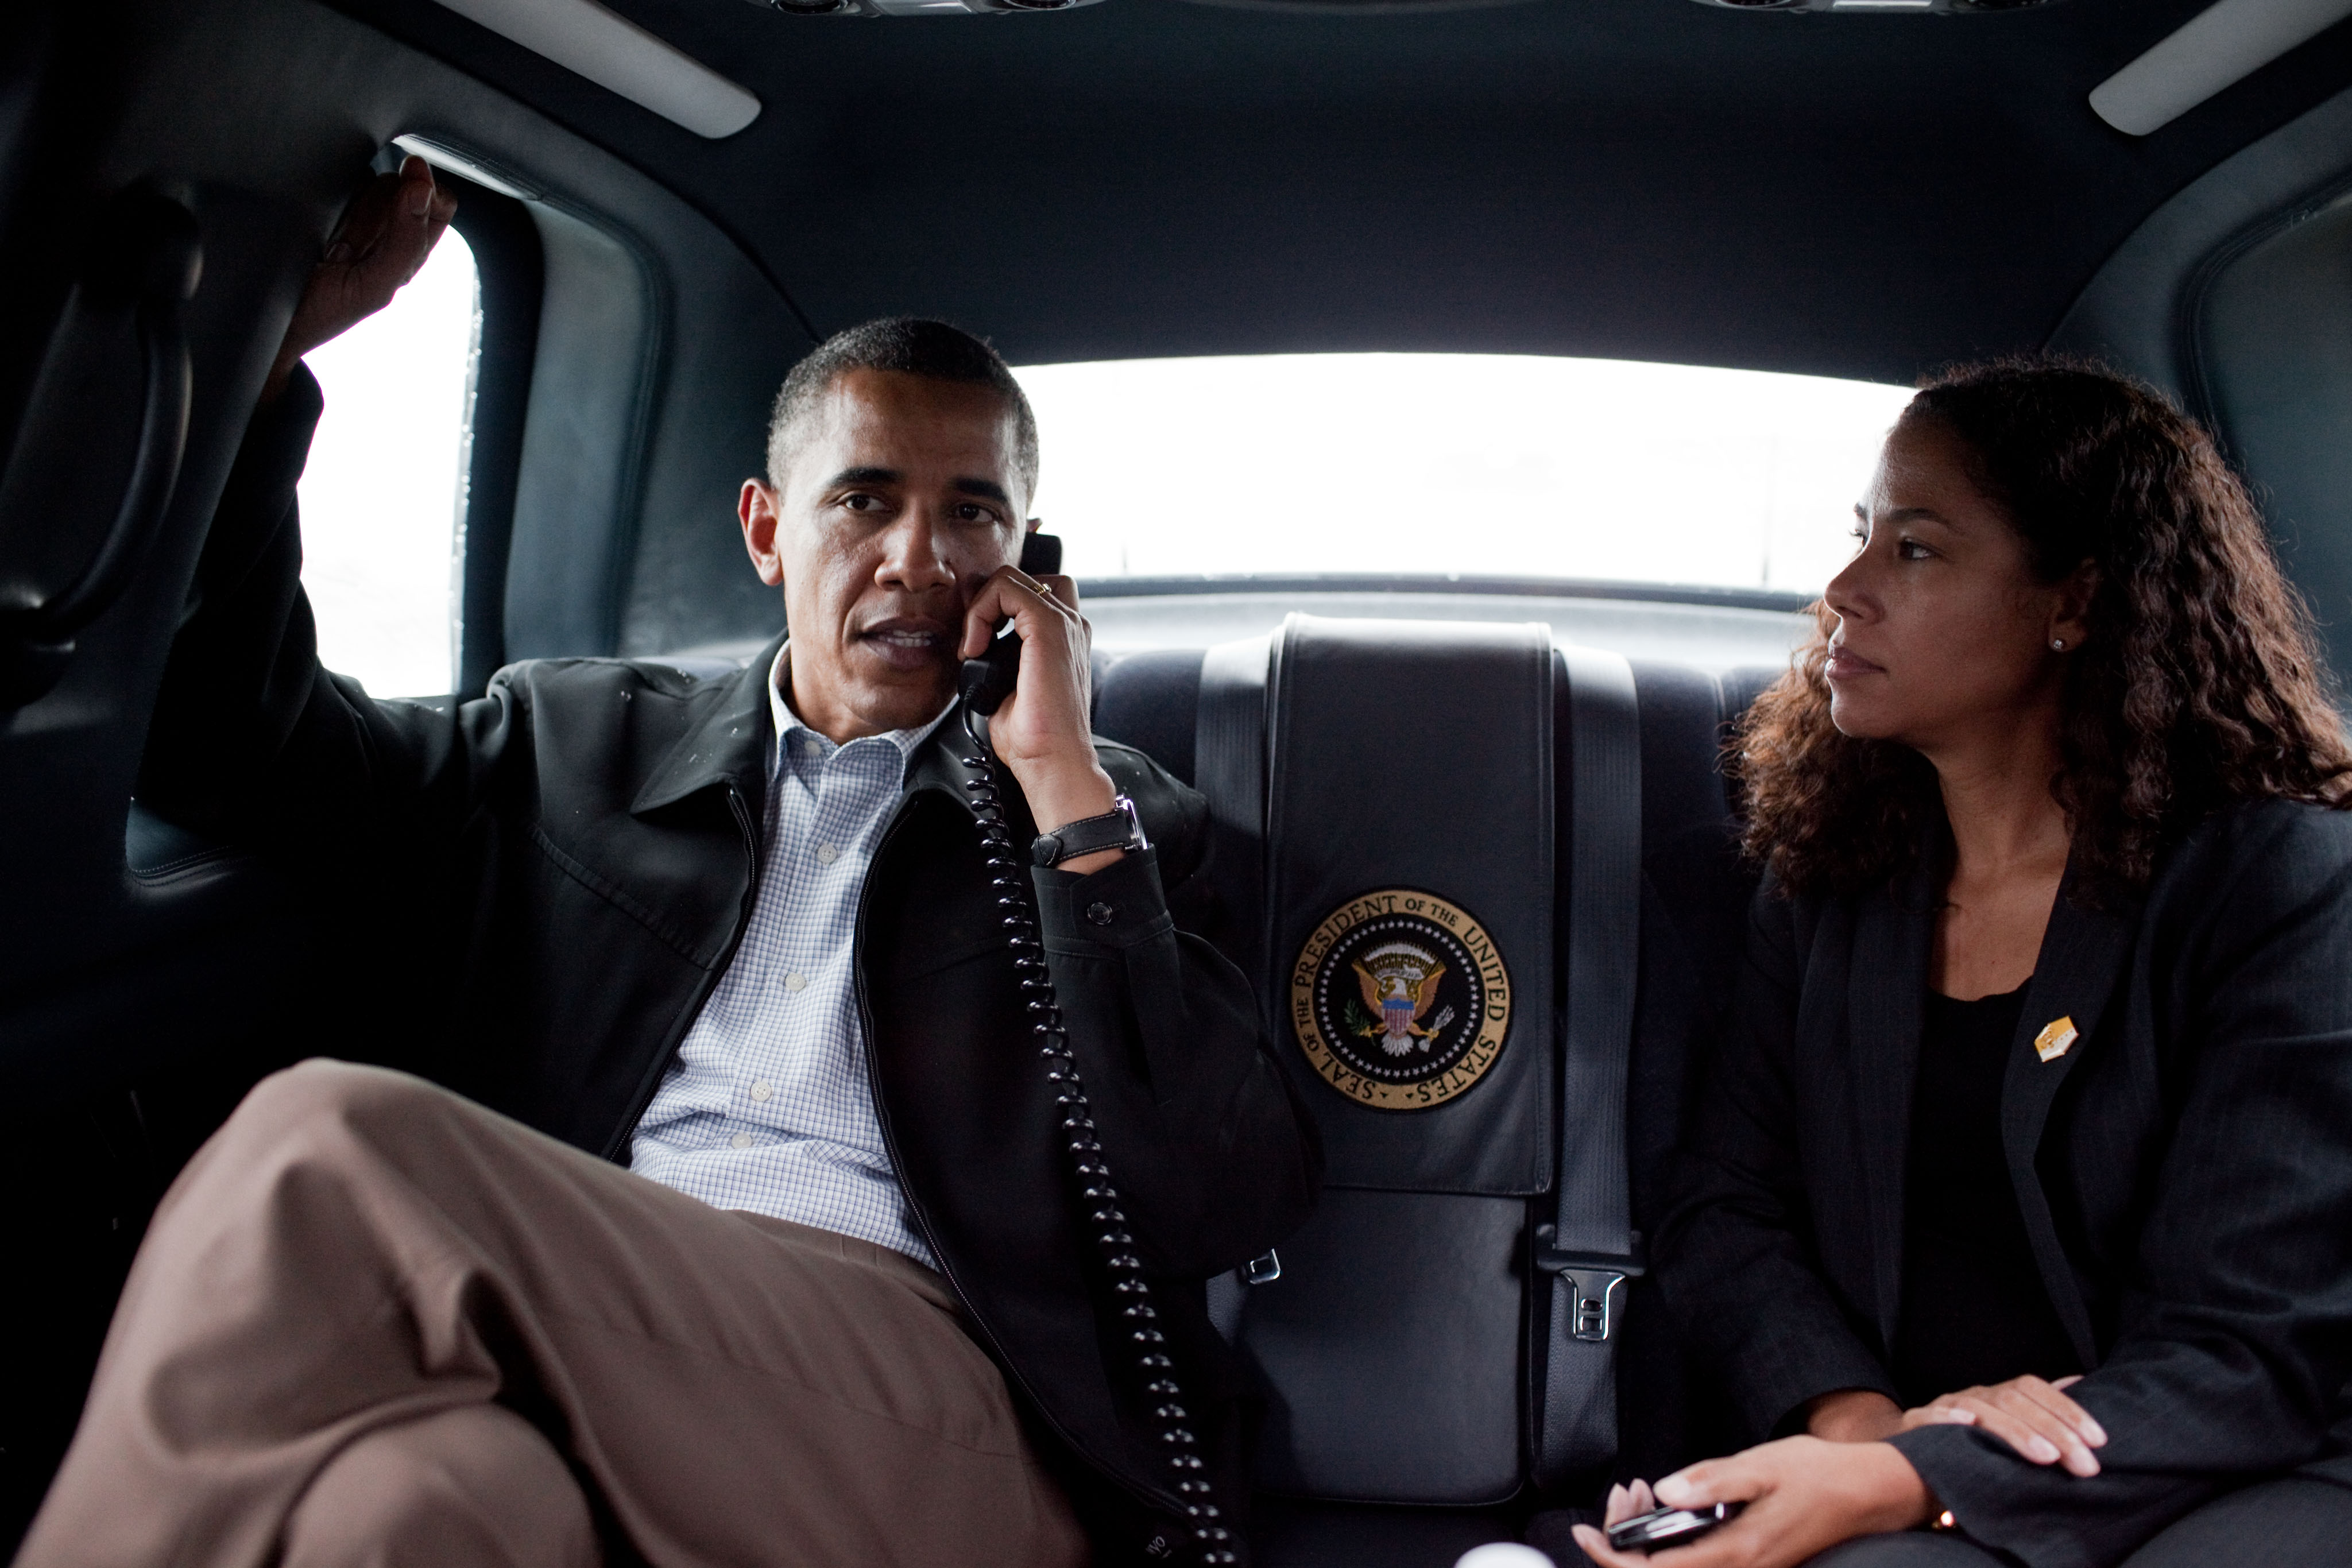 File Sutphen With Obama In Limo Jpg Wikimedia Commons